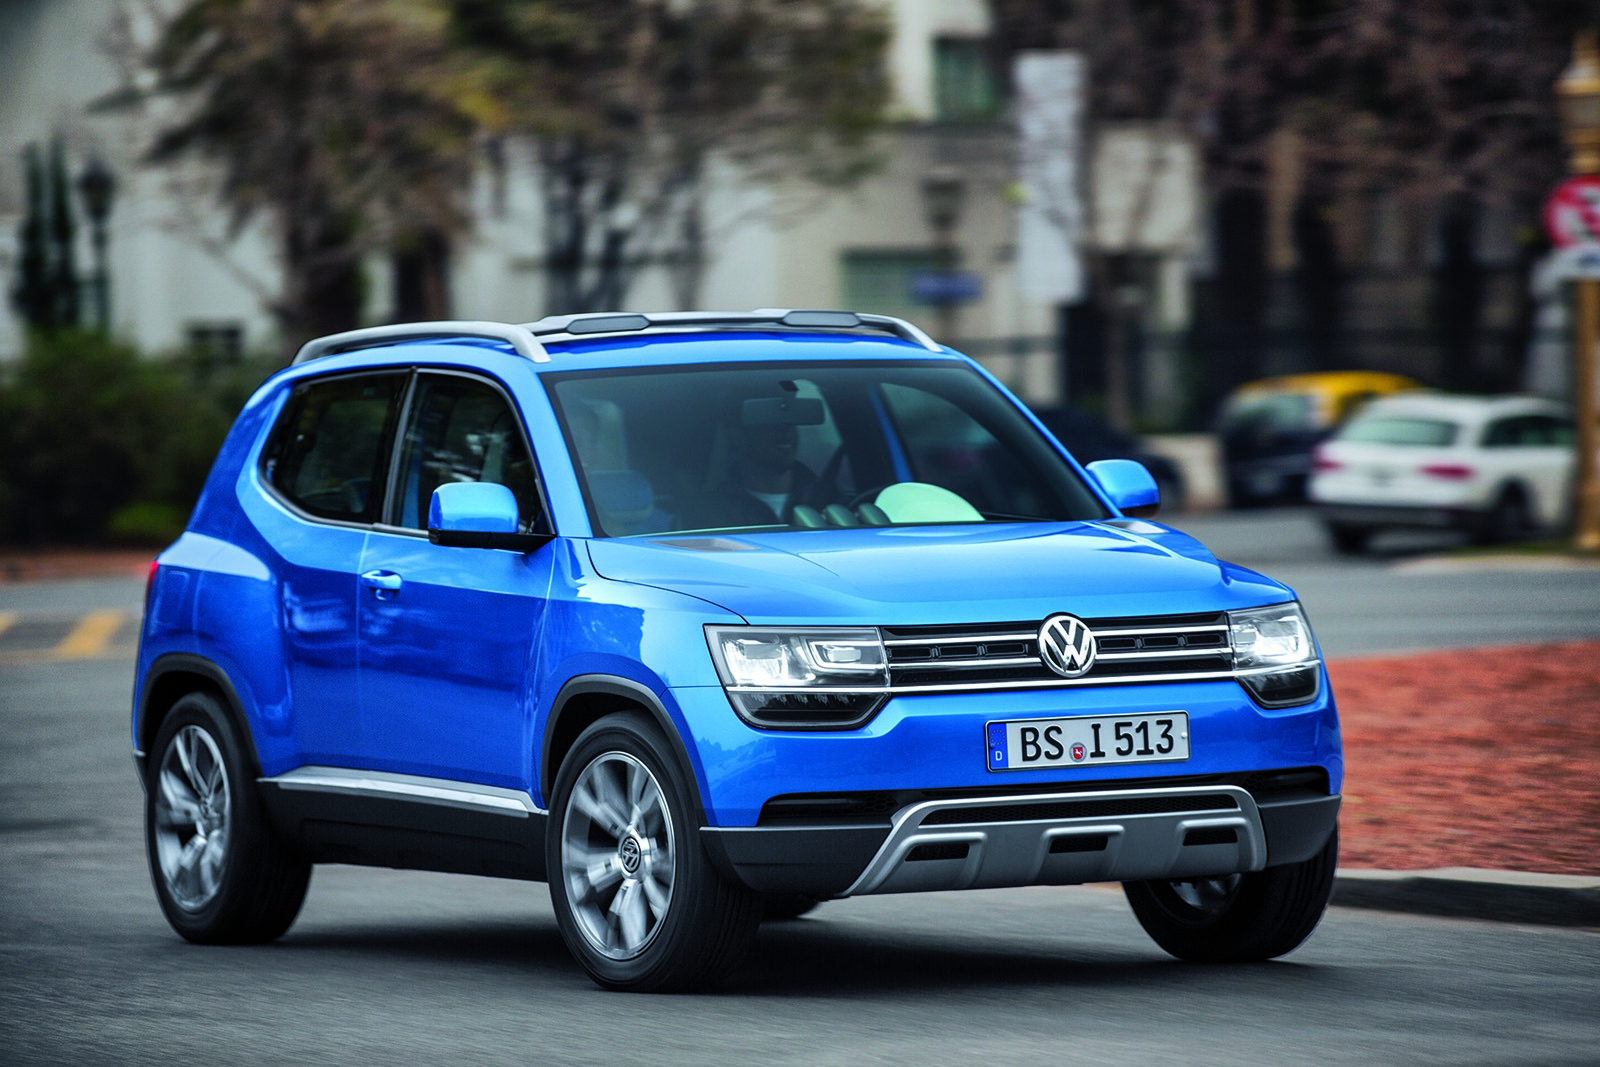 VW Taigun Small SUV could be launched in 2016 | Motoroids